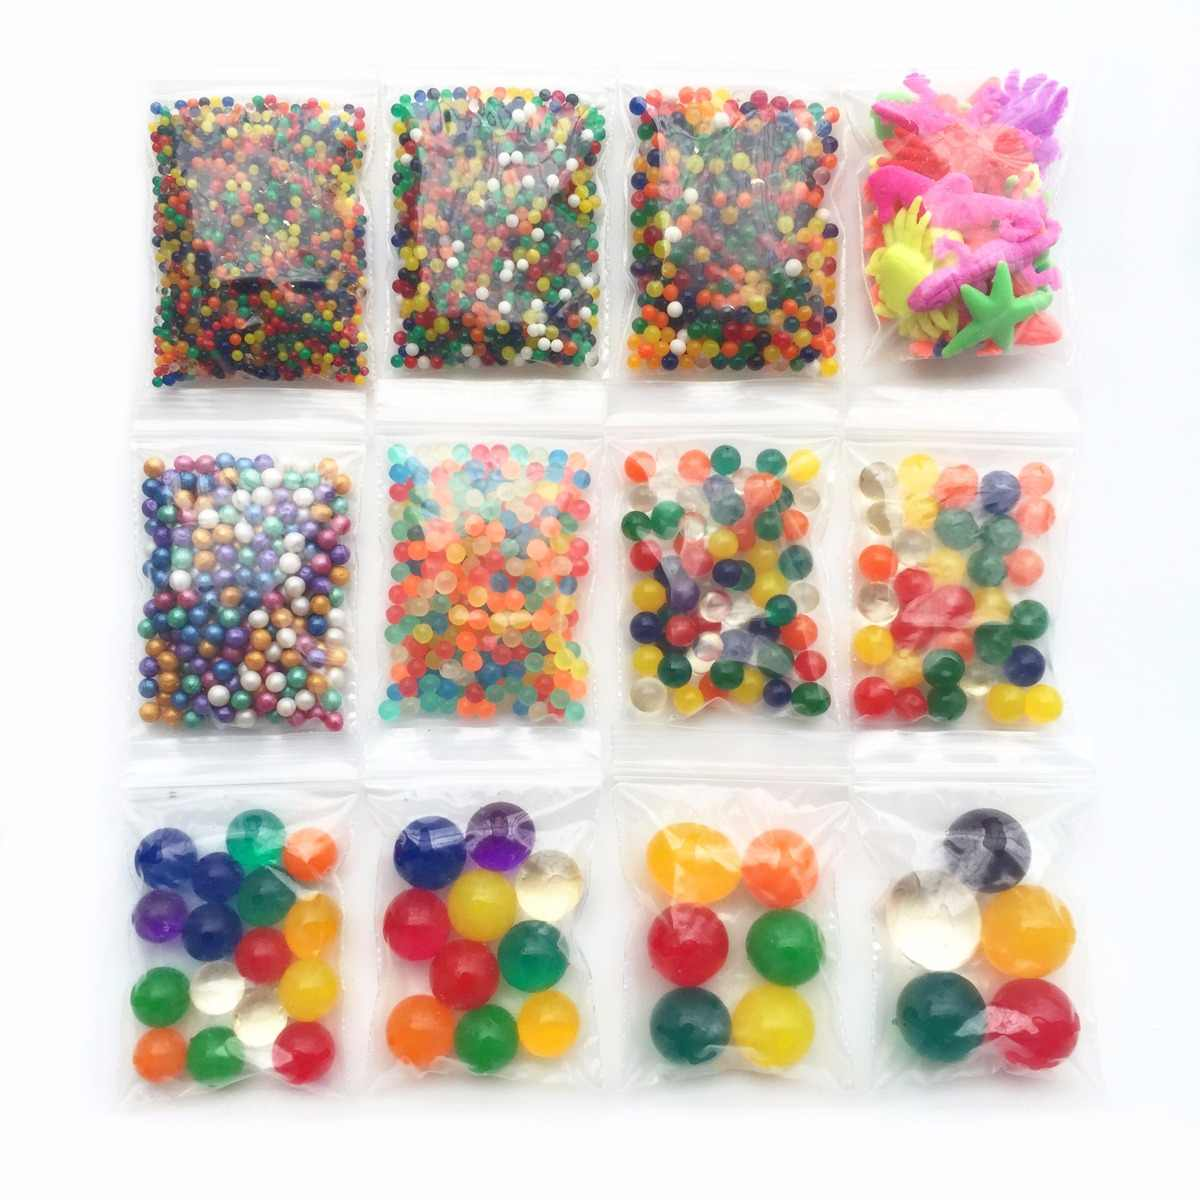 12 Size Pearl Shape Crystal Soil Mud Hydrogel Gel Growing Glitter Orbiz Water Balls Water Beads Set Home Decor